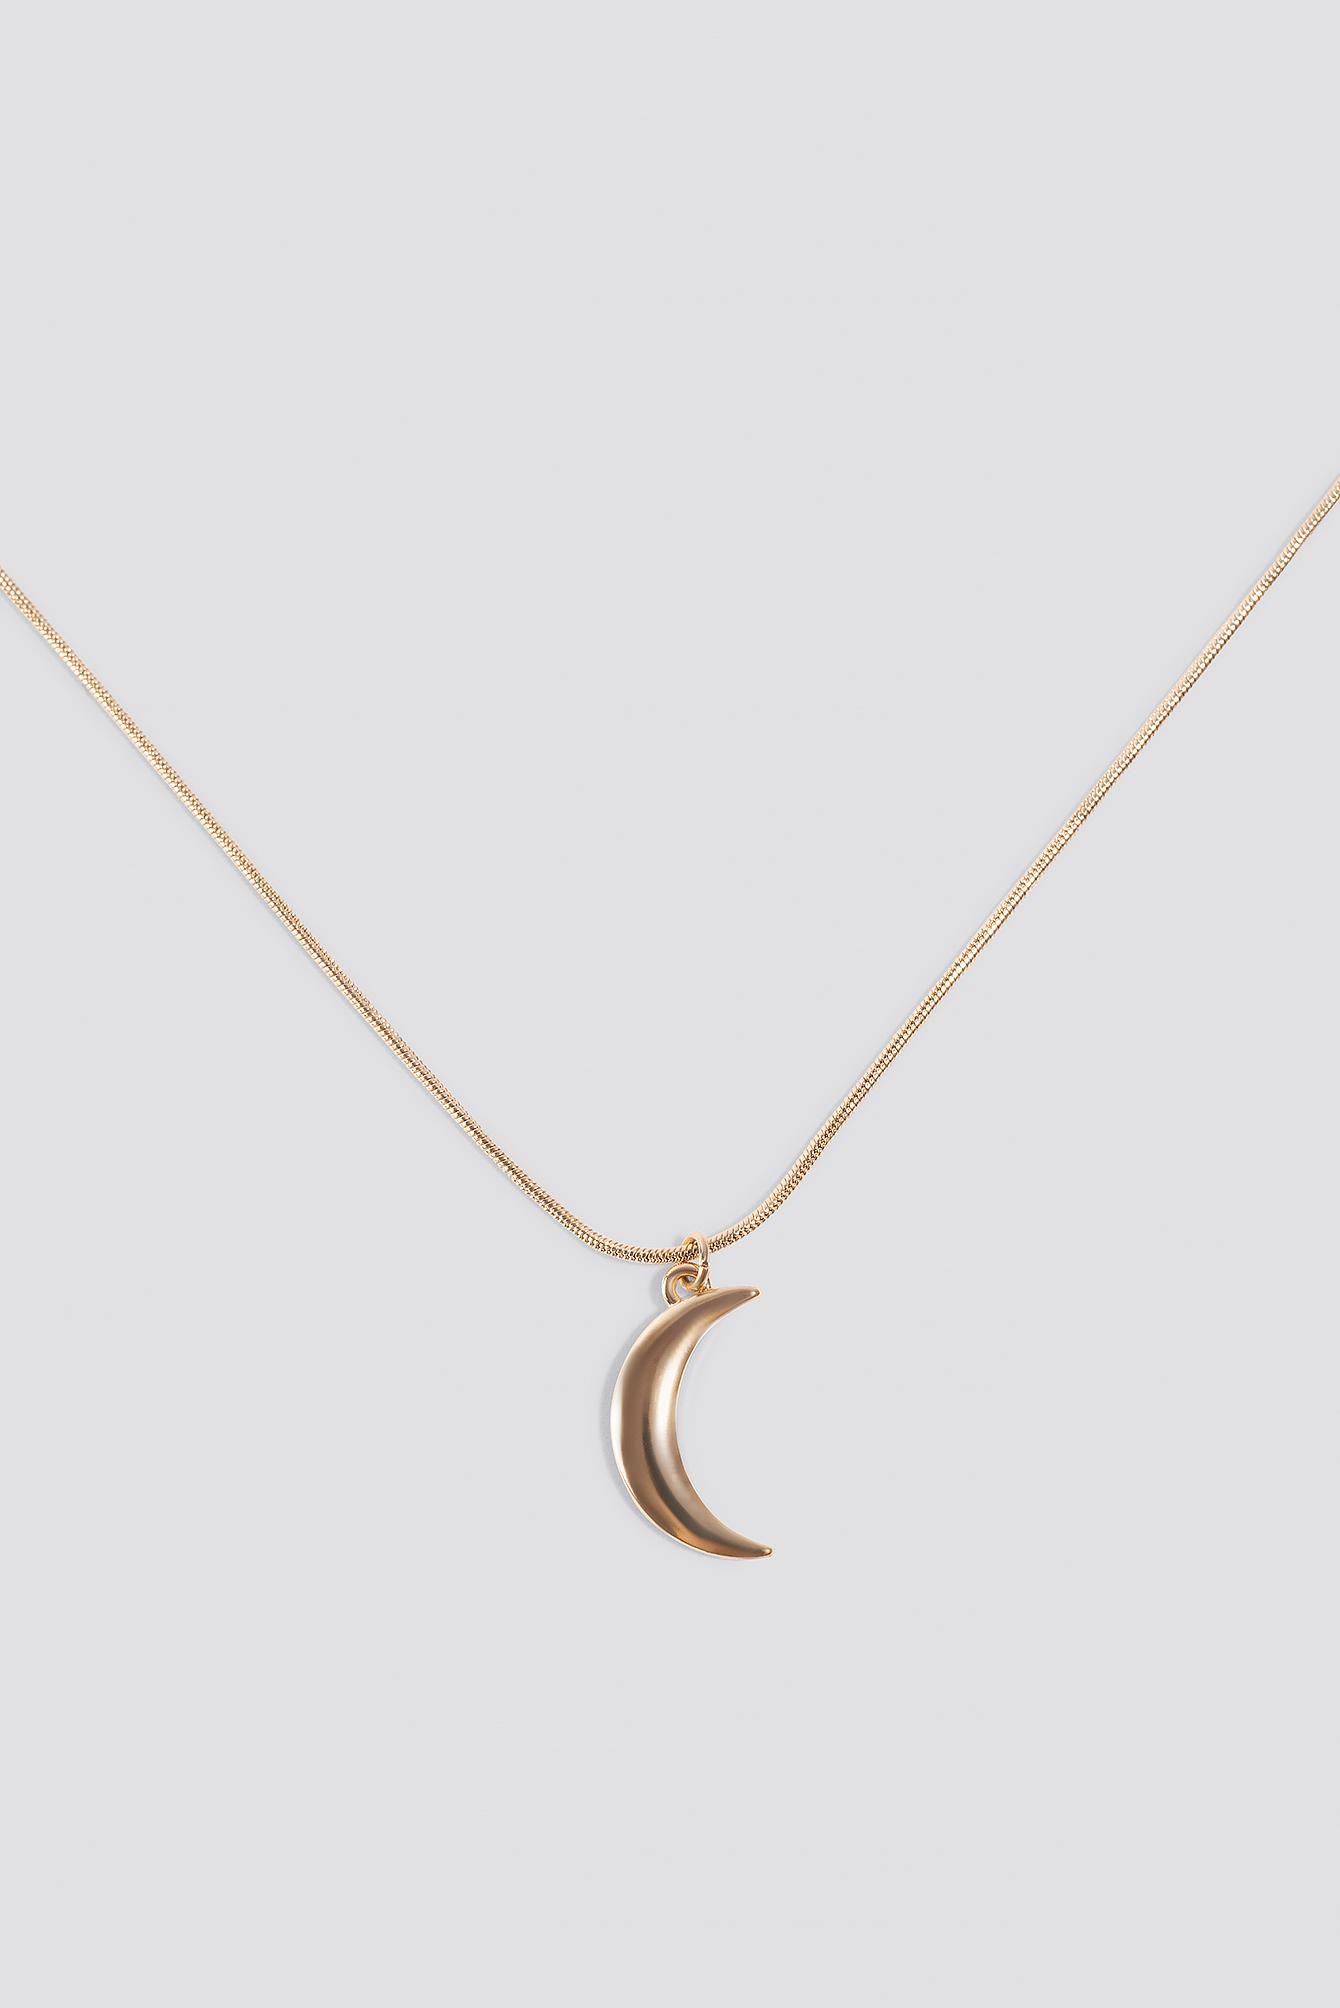 NA-KD Nina Groer Moon Necklace Gold in Metallic